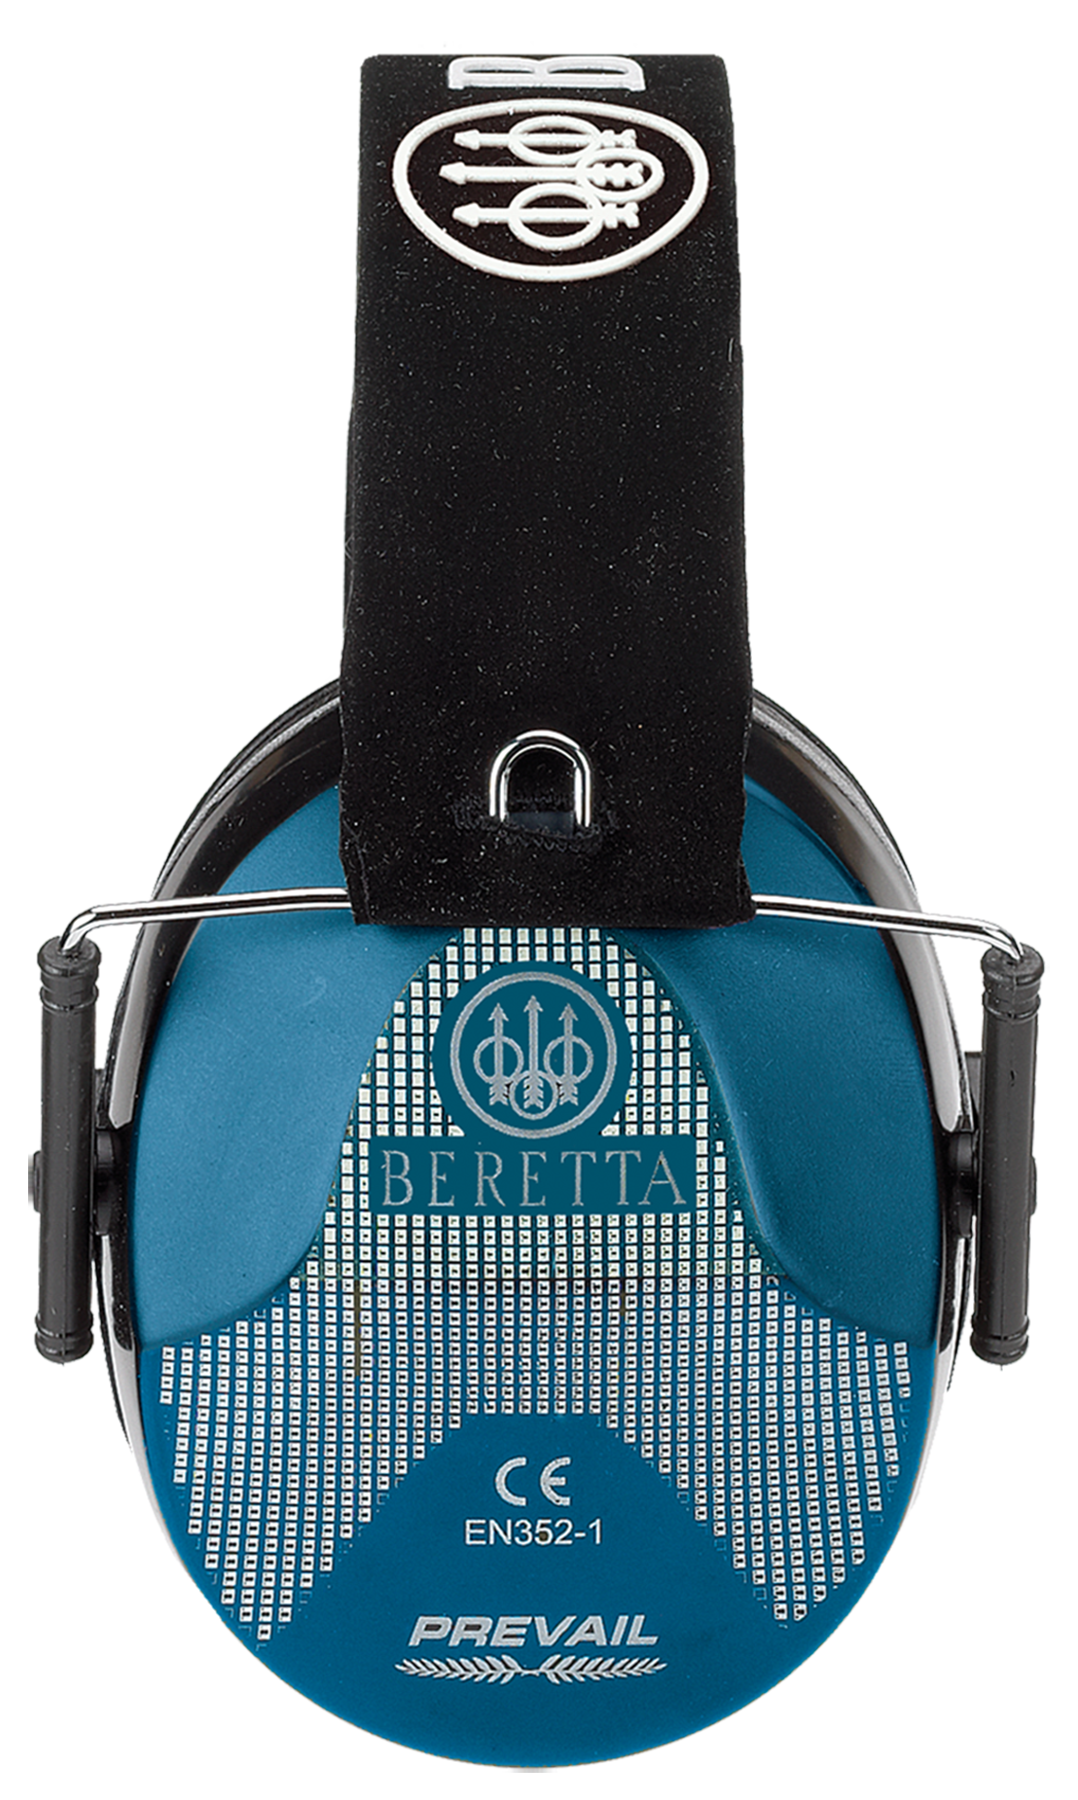 Beretta Low Profile Earmuffs - NRR 25 dB - Blue